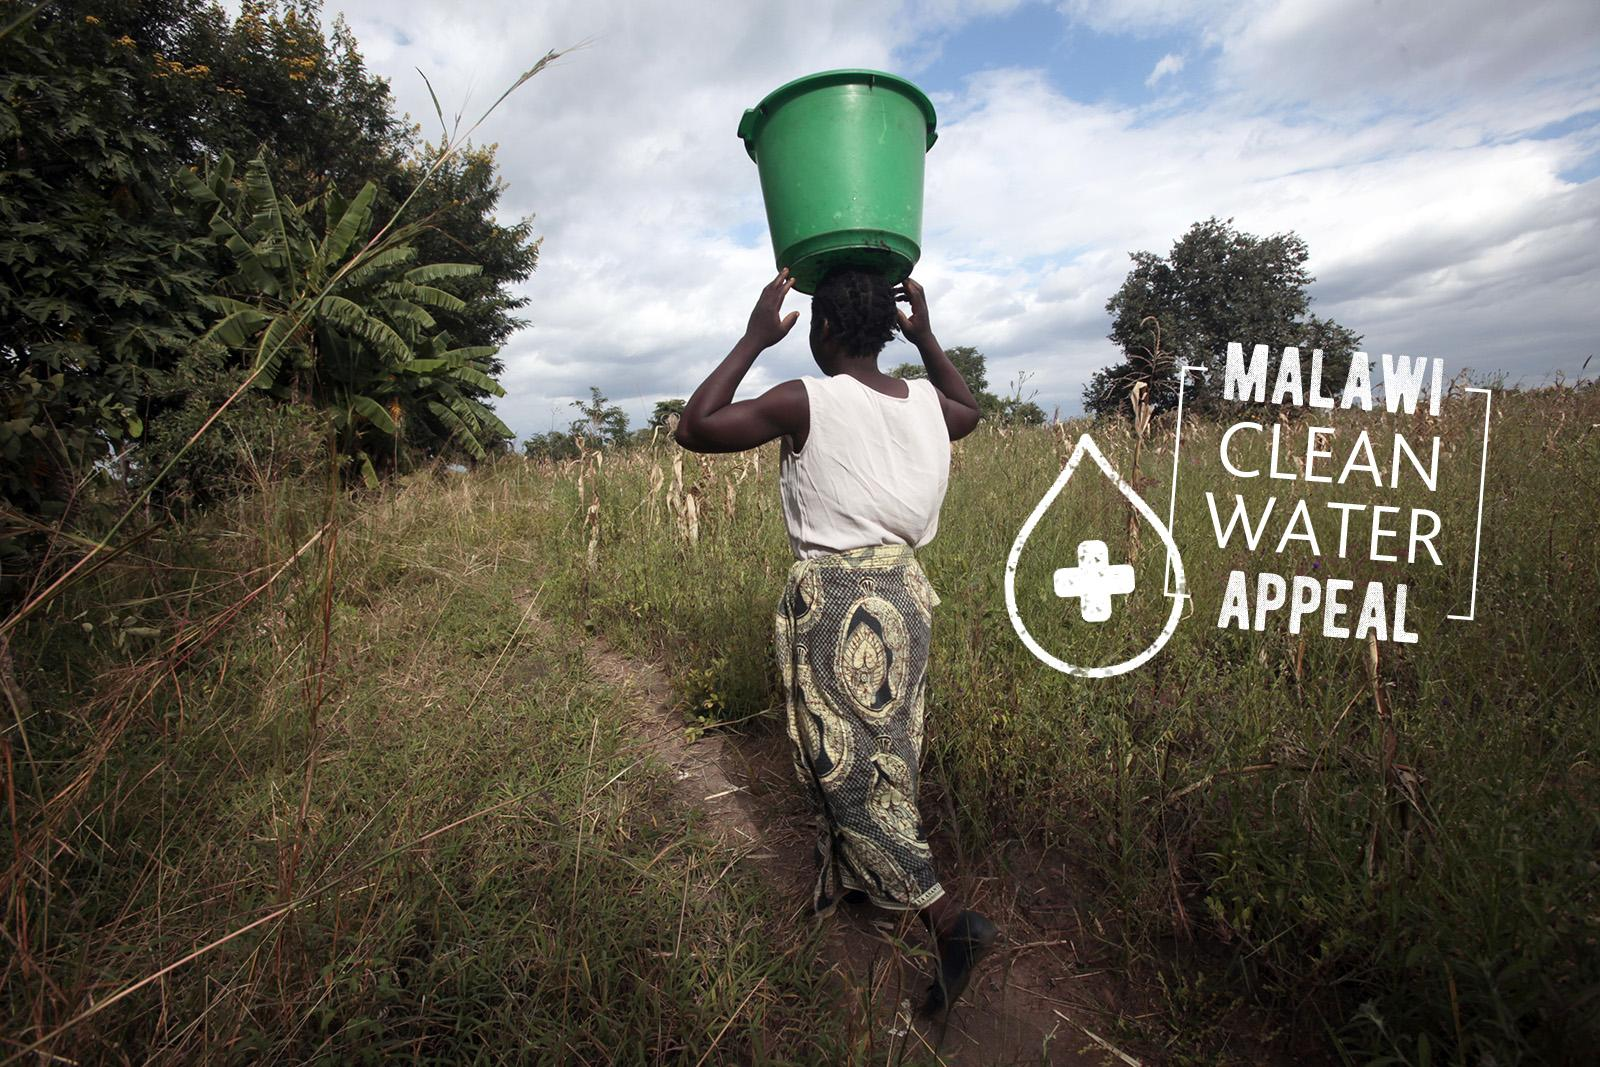 Malawi Clean Water Appeal